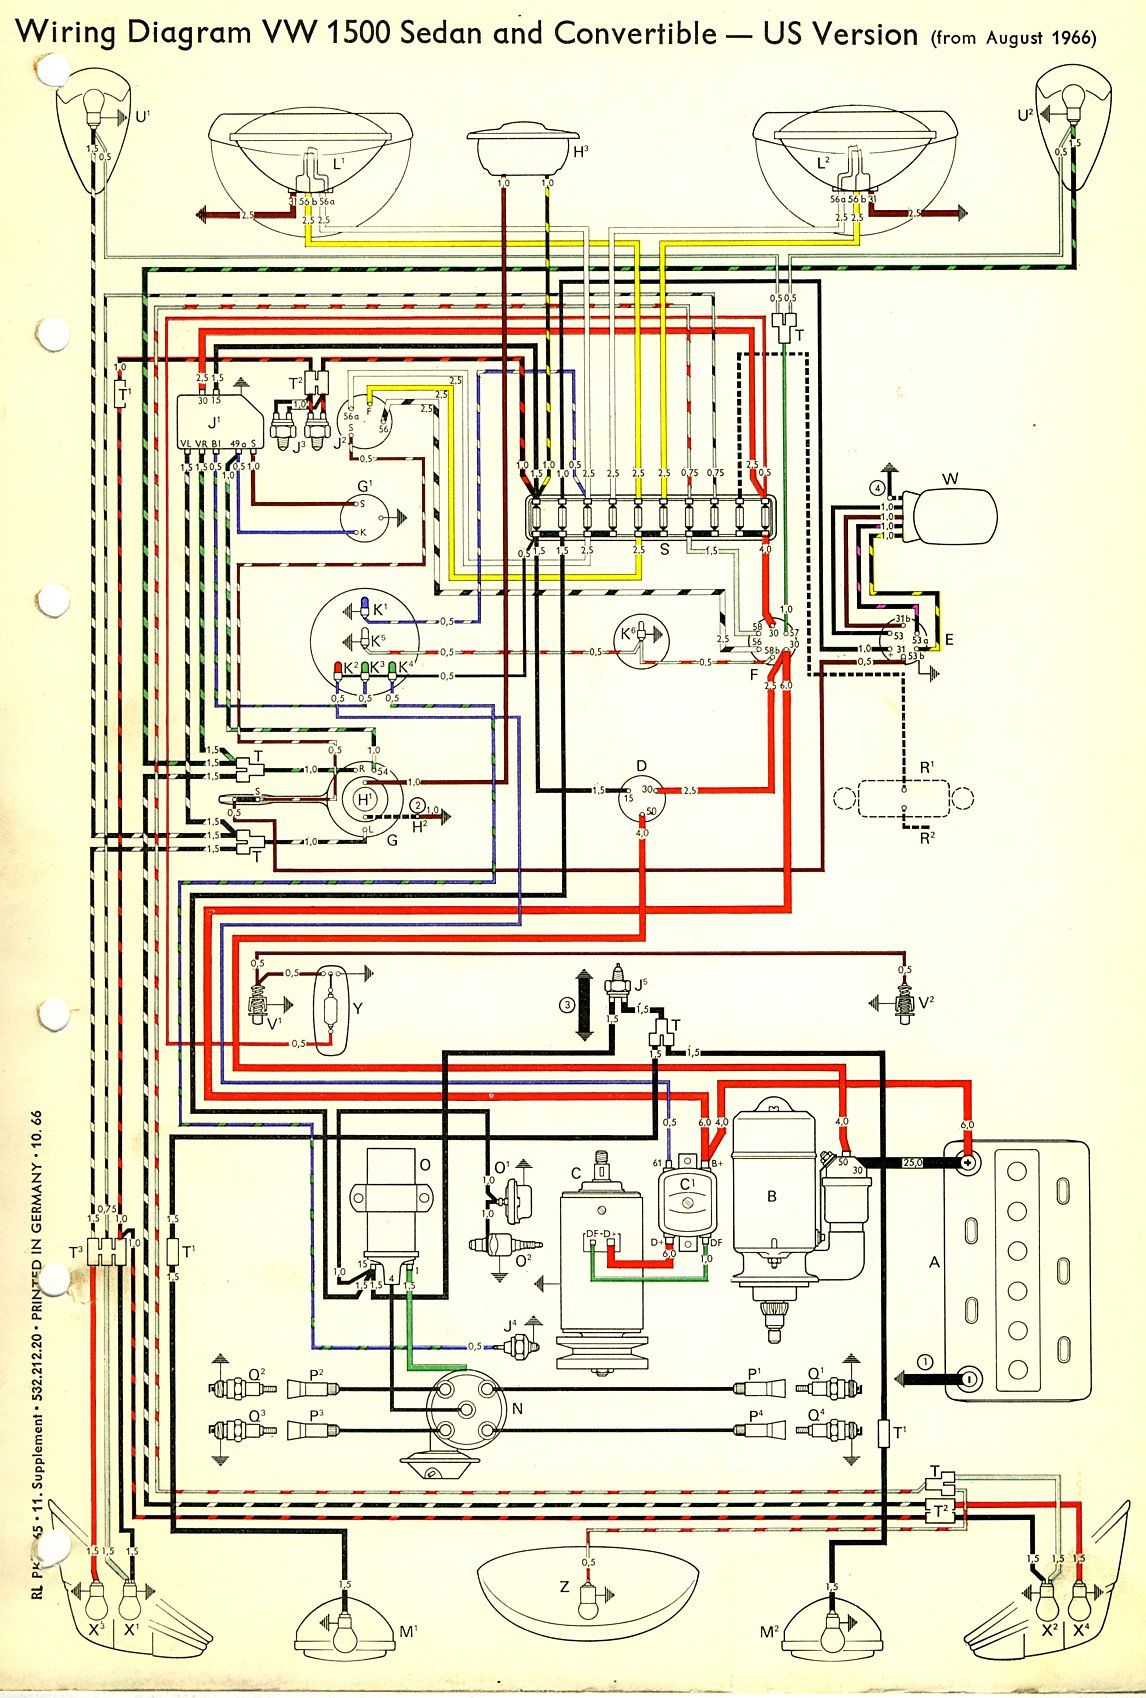 hight resolution of 1967 beetle wiring diagram usa thegoldenbug com best 1967 vw rh pinterest com chevy s10 speedometer